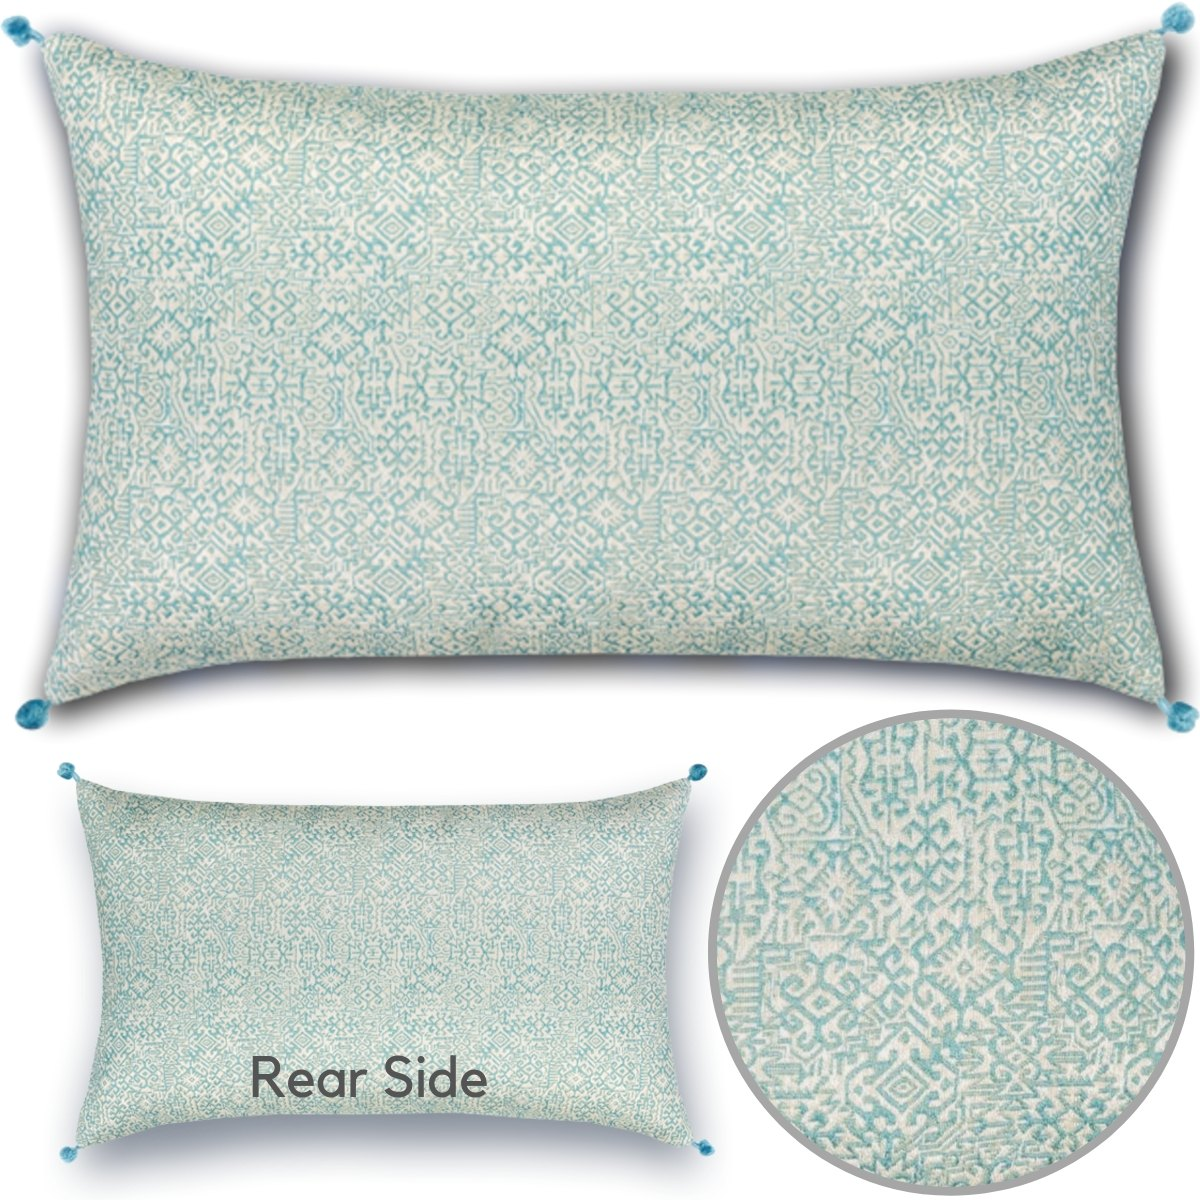 inca-tile-lumbar-pillow